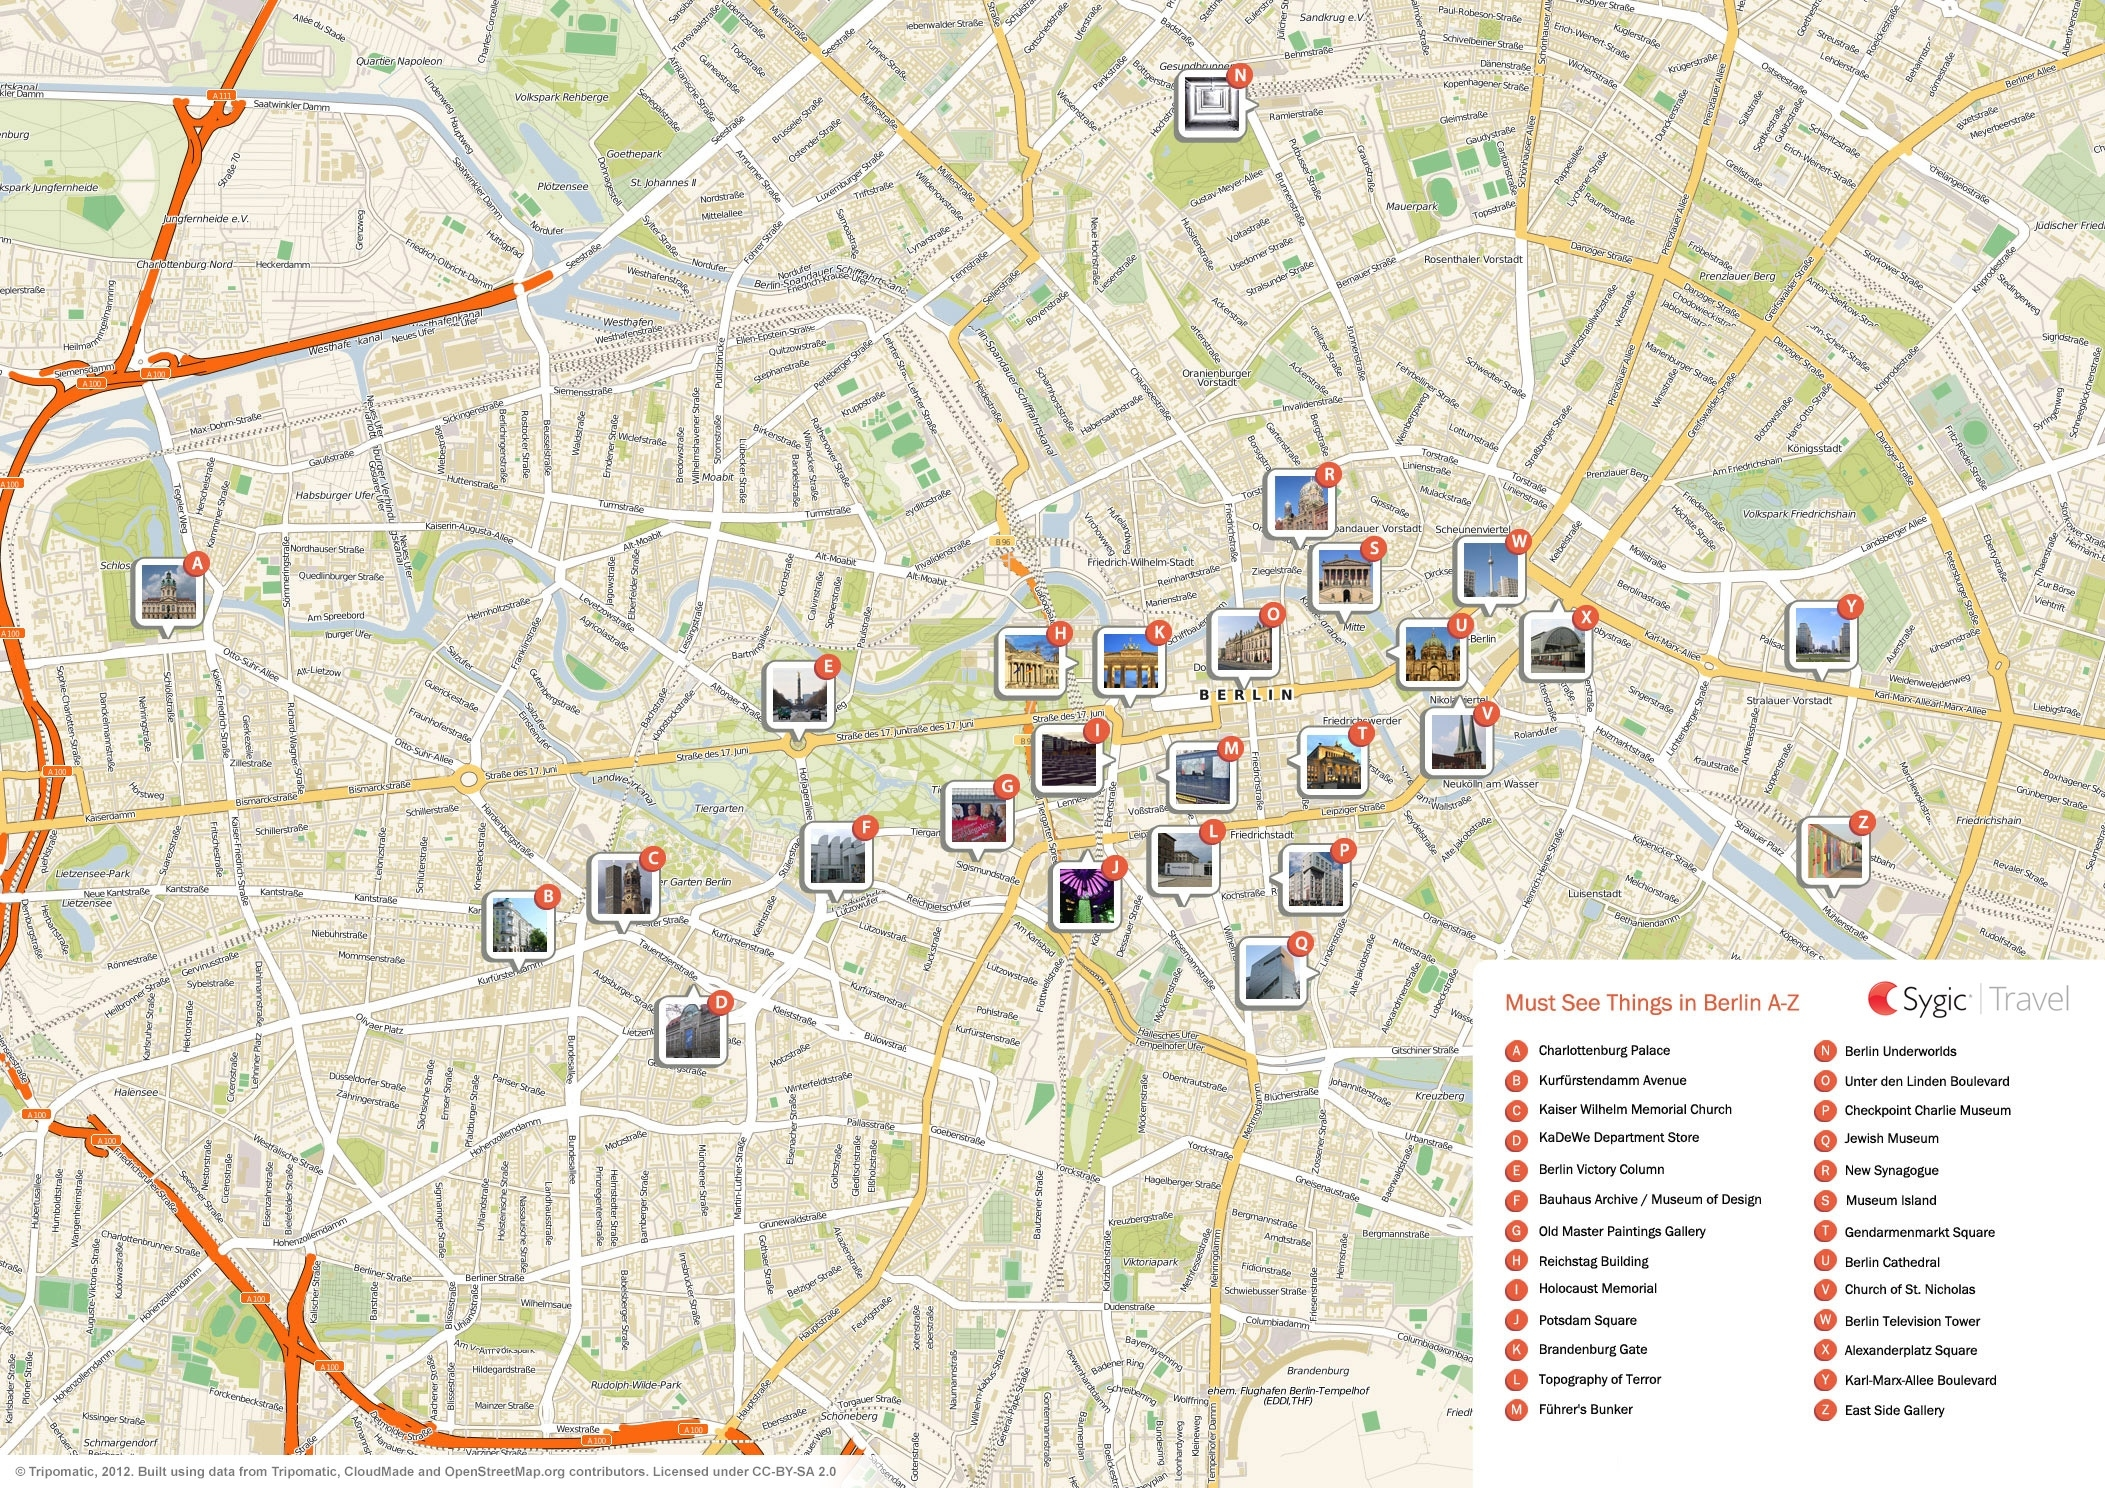 Berlin Printable Tourist Map | Sygic Travel throughout Berlin Germany Attractions Map